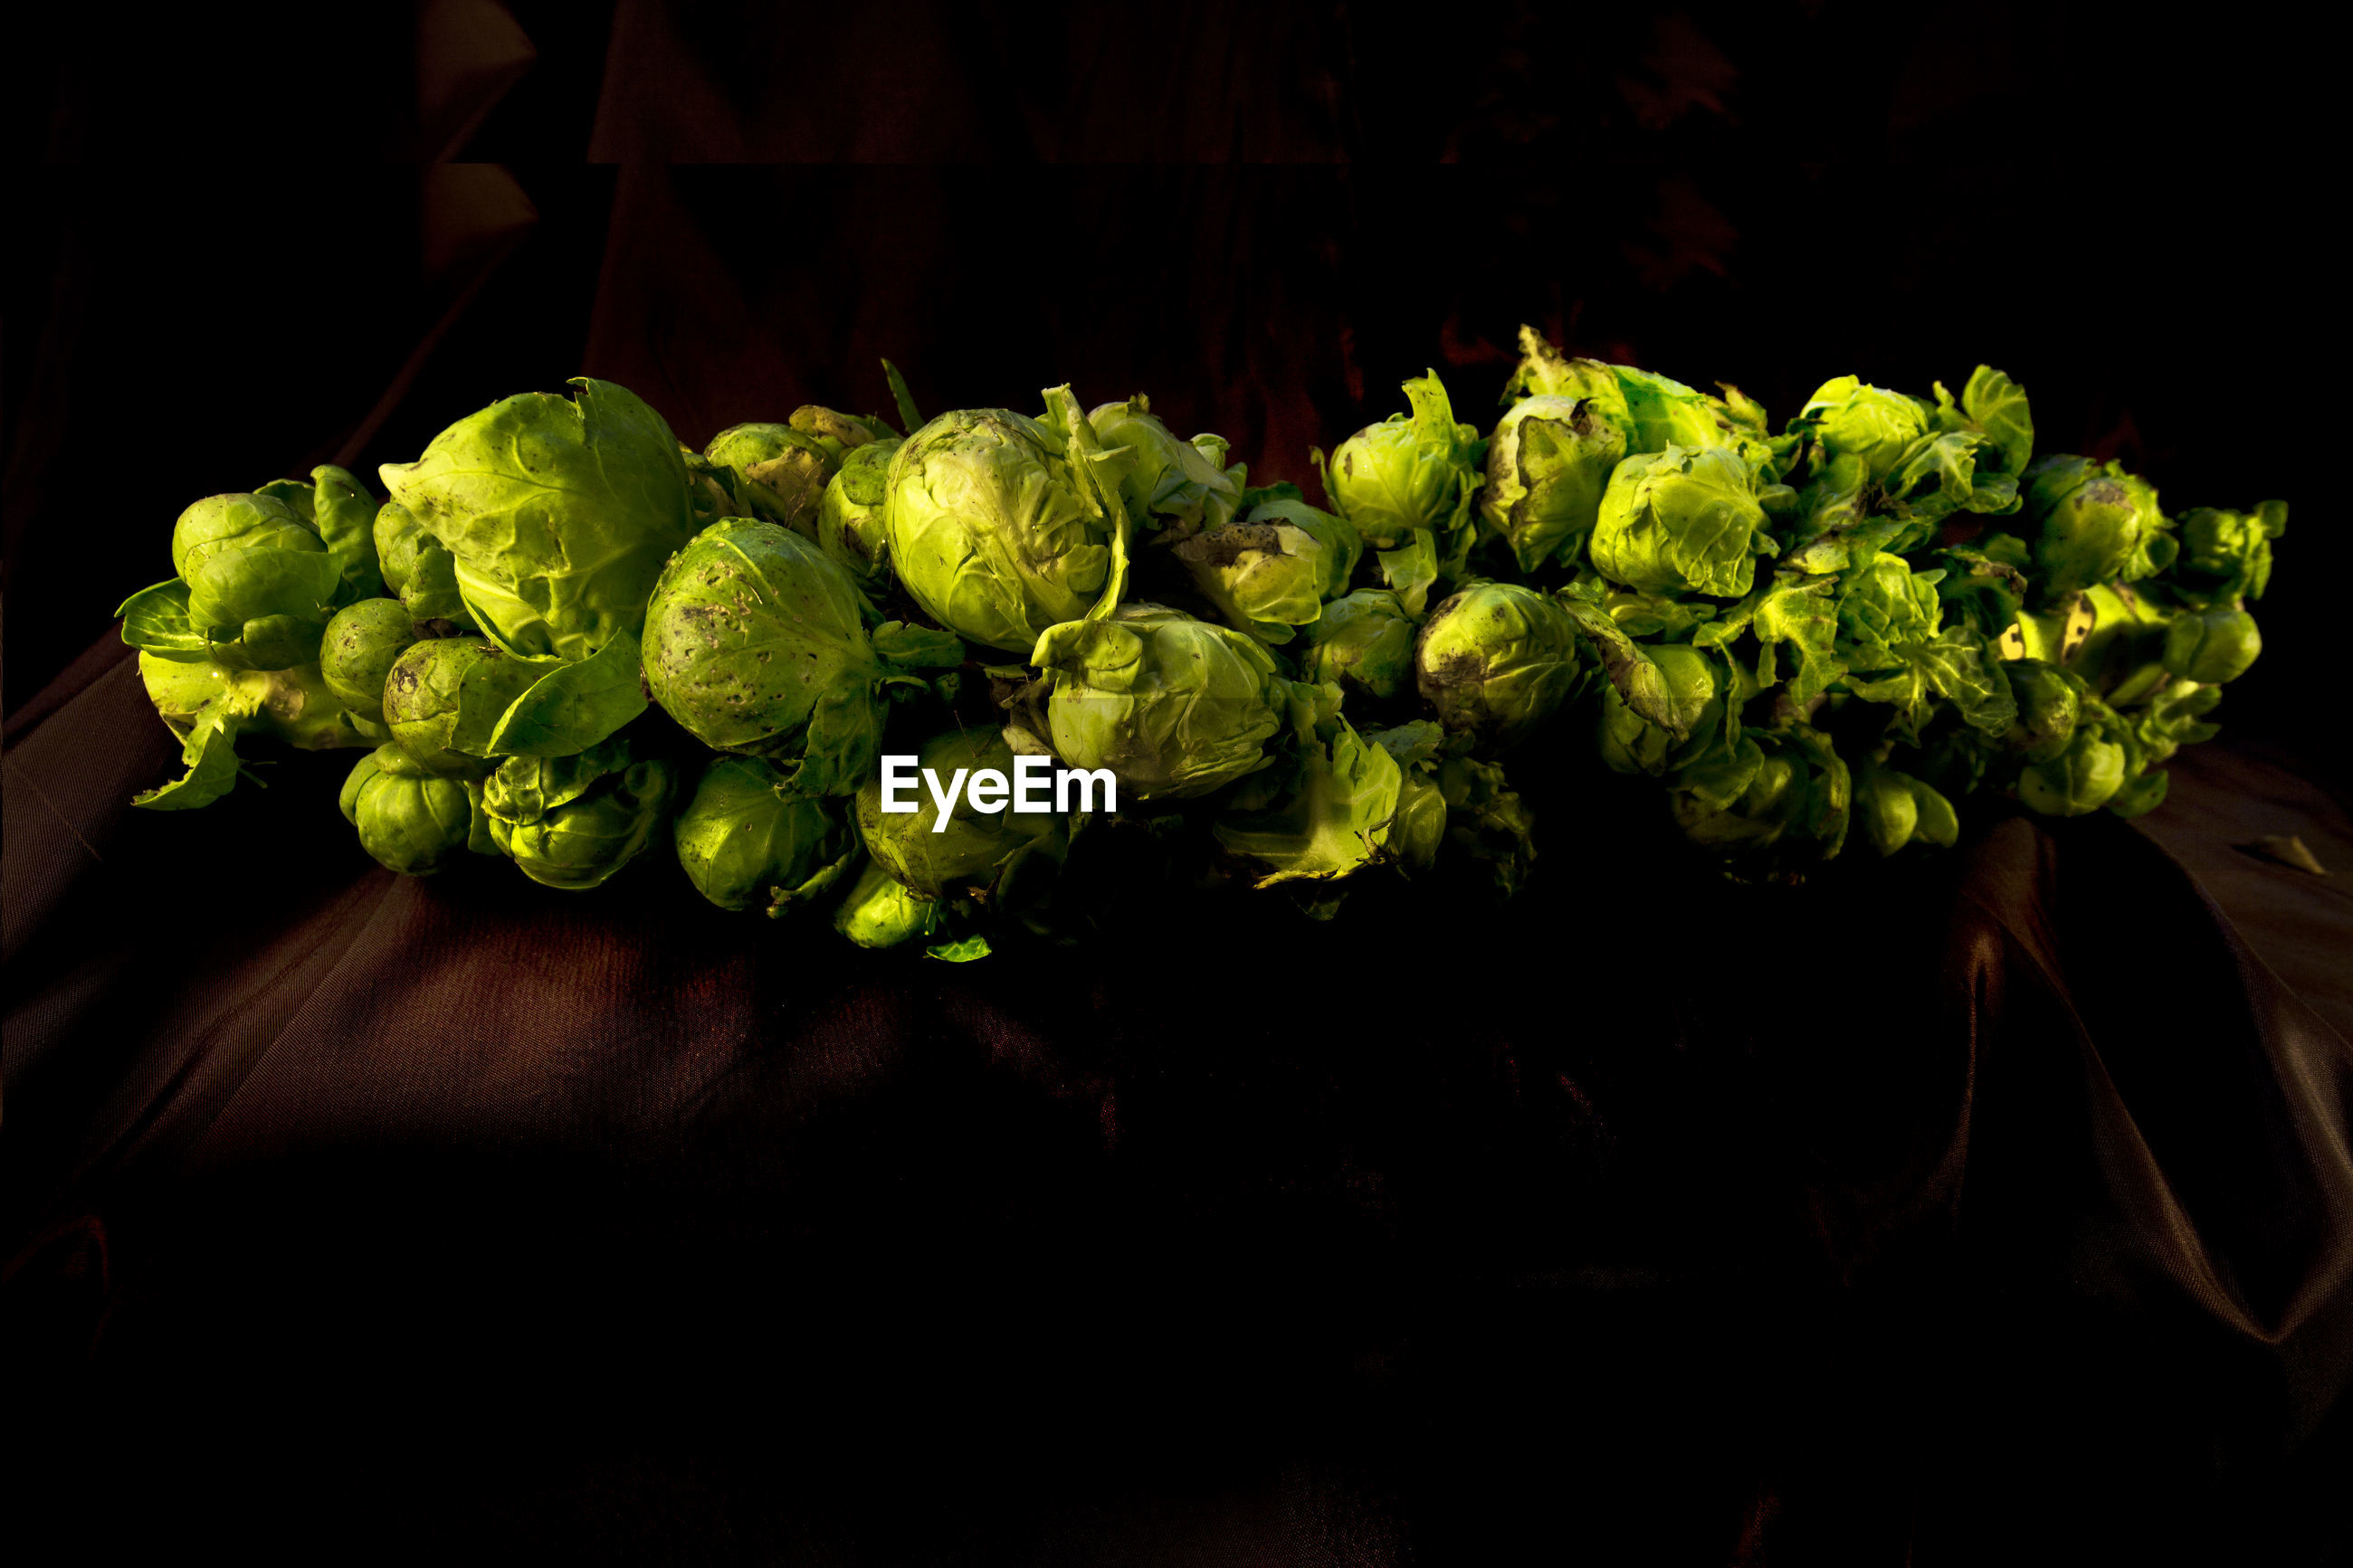 High angle view of brussels sprouts